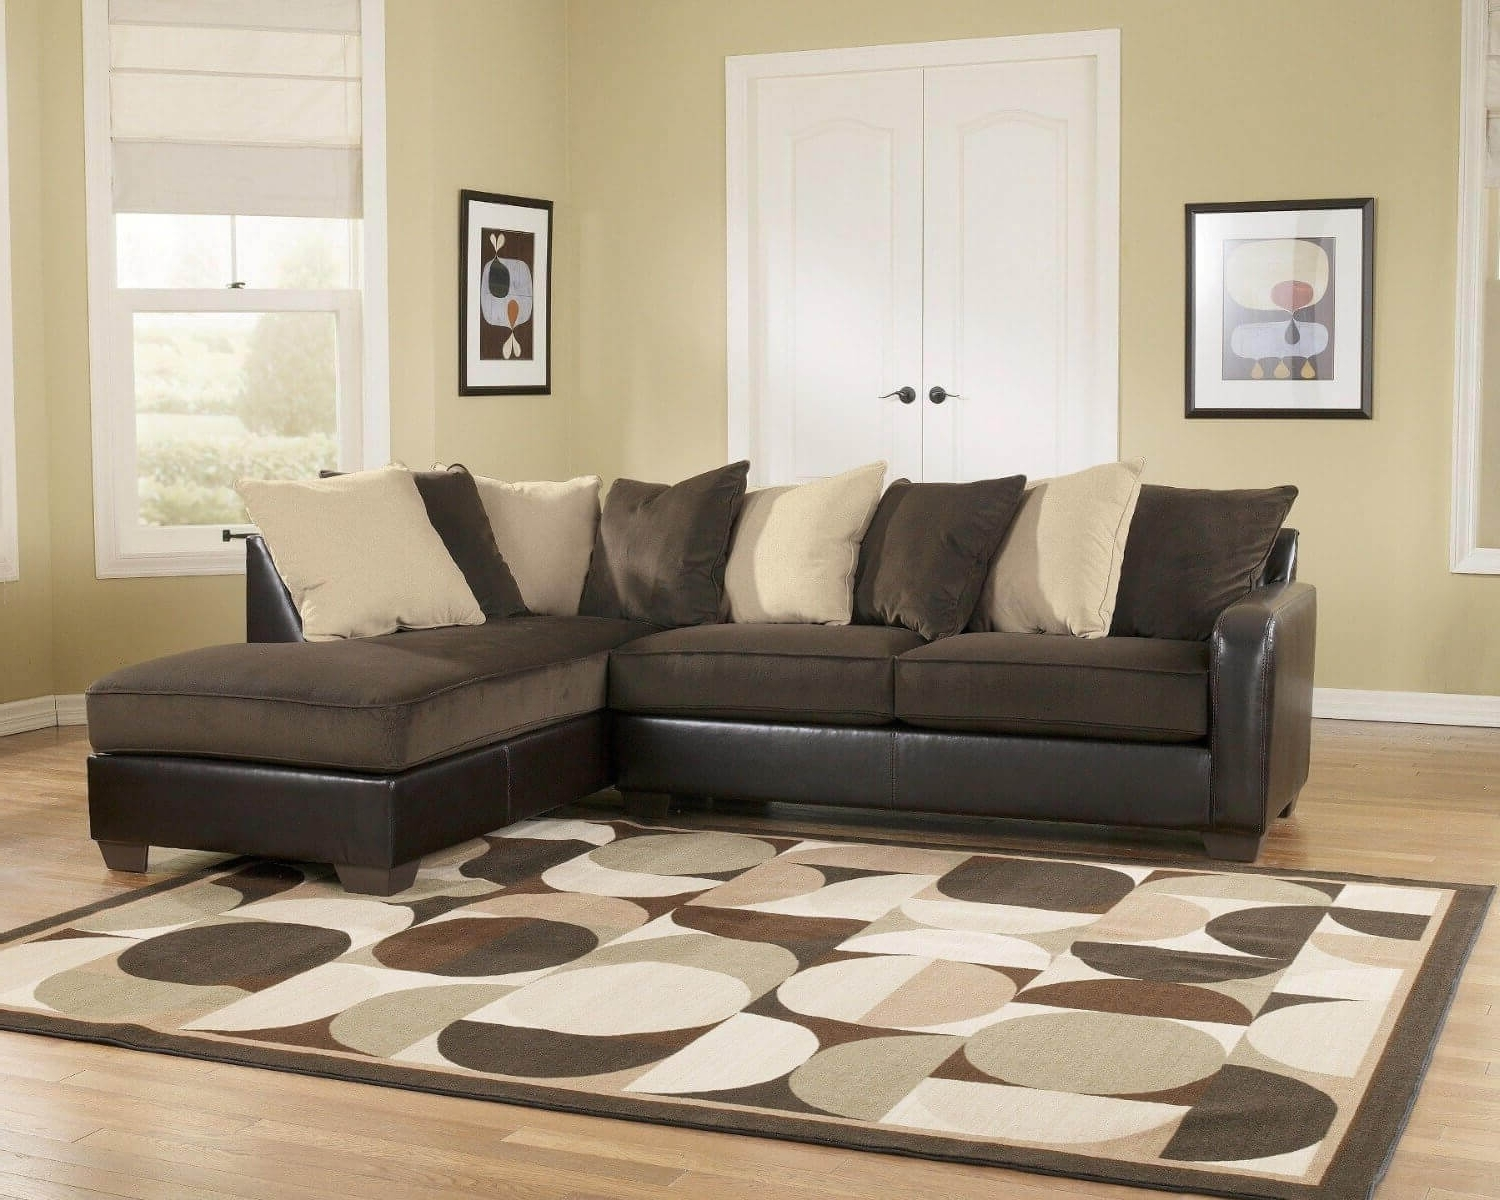 Home Furniture Sectional Sofas Within 2019 100 Awesome Sectional Sofas Under $1,000 (2018) (View 17 of 20)